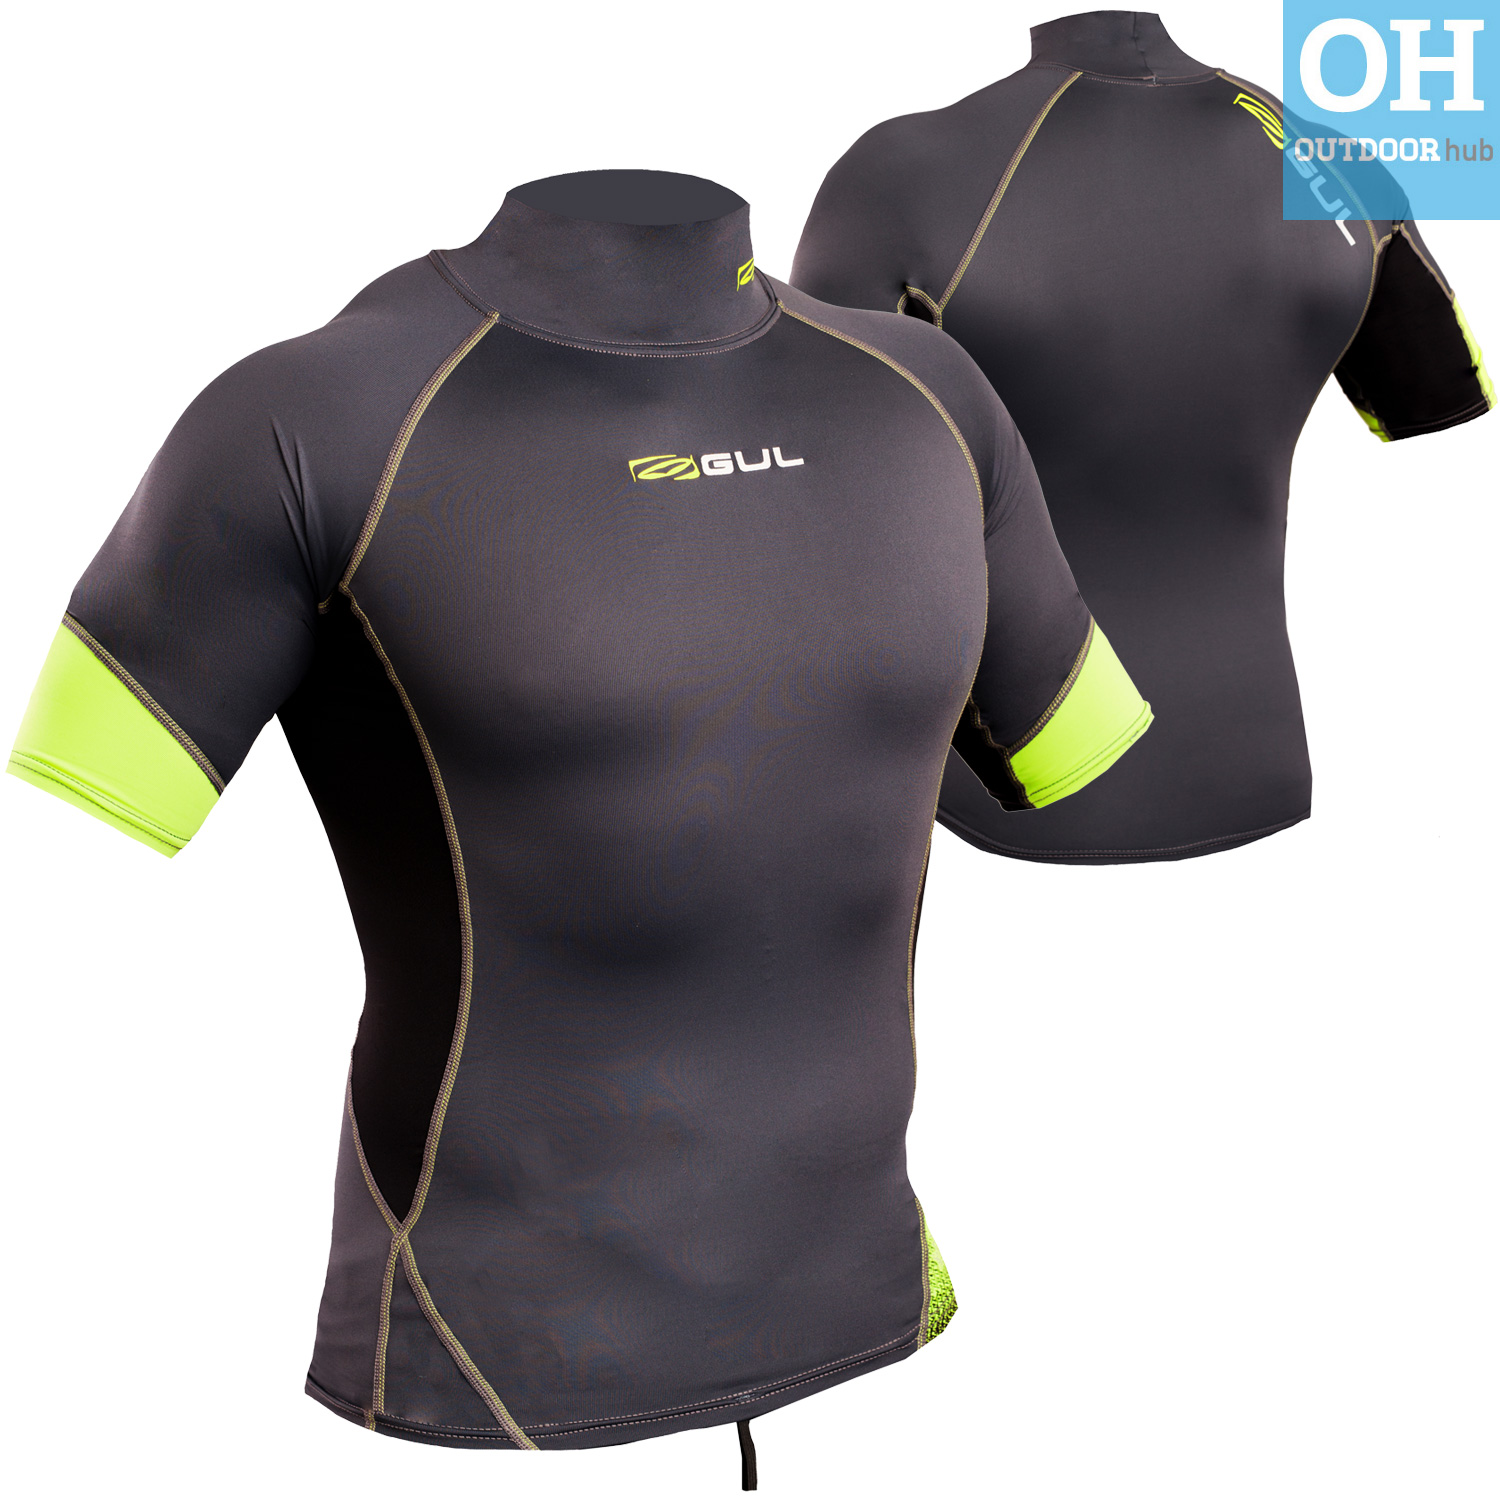 Gul-Xola-Mens-Short-Sleeve-Rash-Guard-Vest-Wetsuit-Top-UV-50-Surf-Swim-Dive thumbnail 25